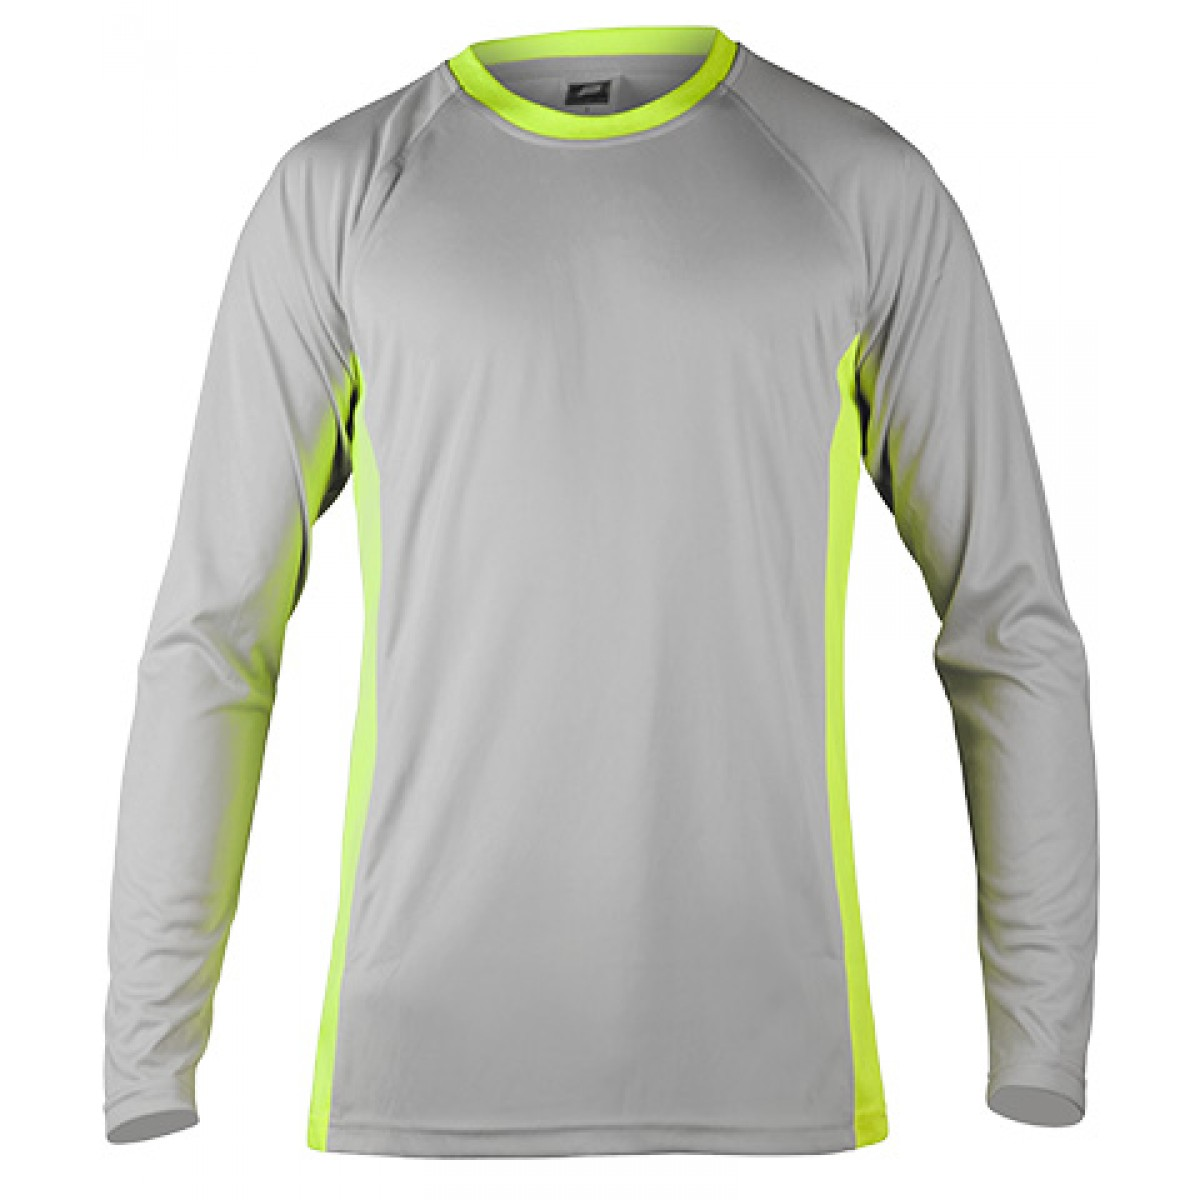 Long Sleeves Performance With Side Insert-Gray/Green-YL